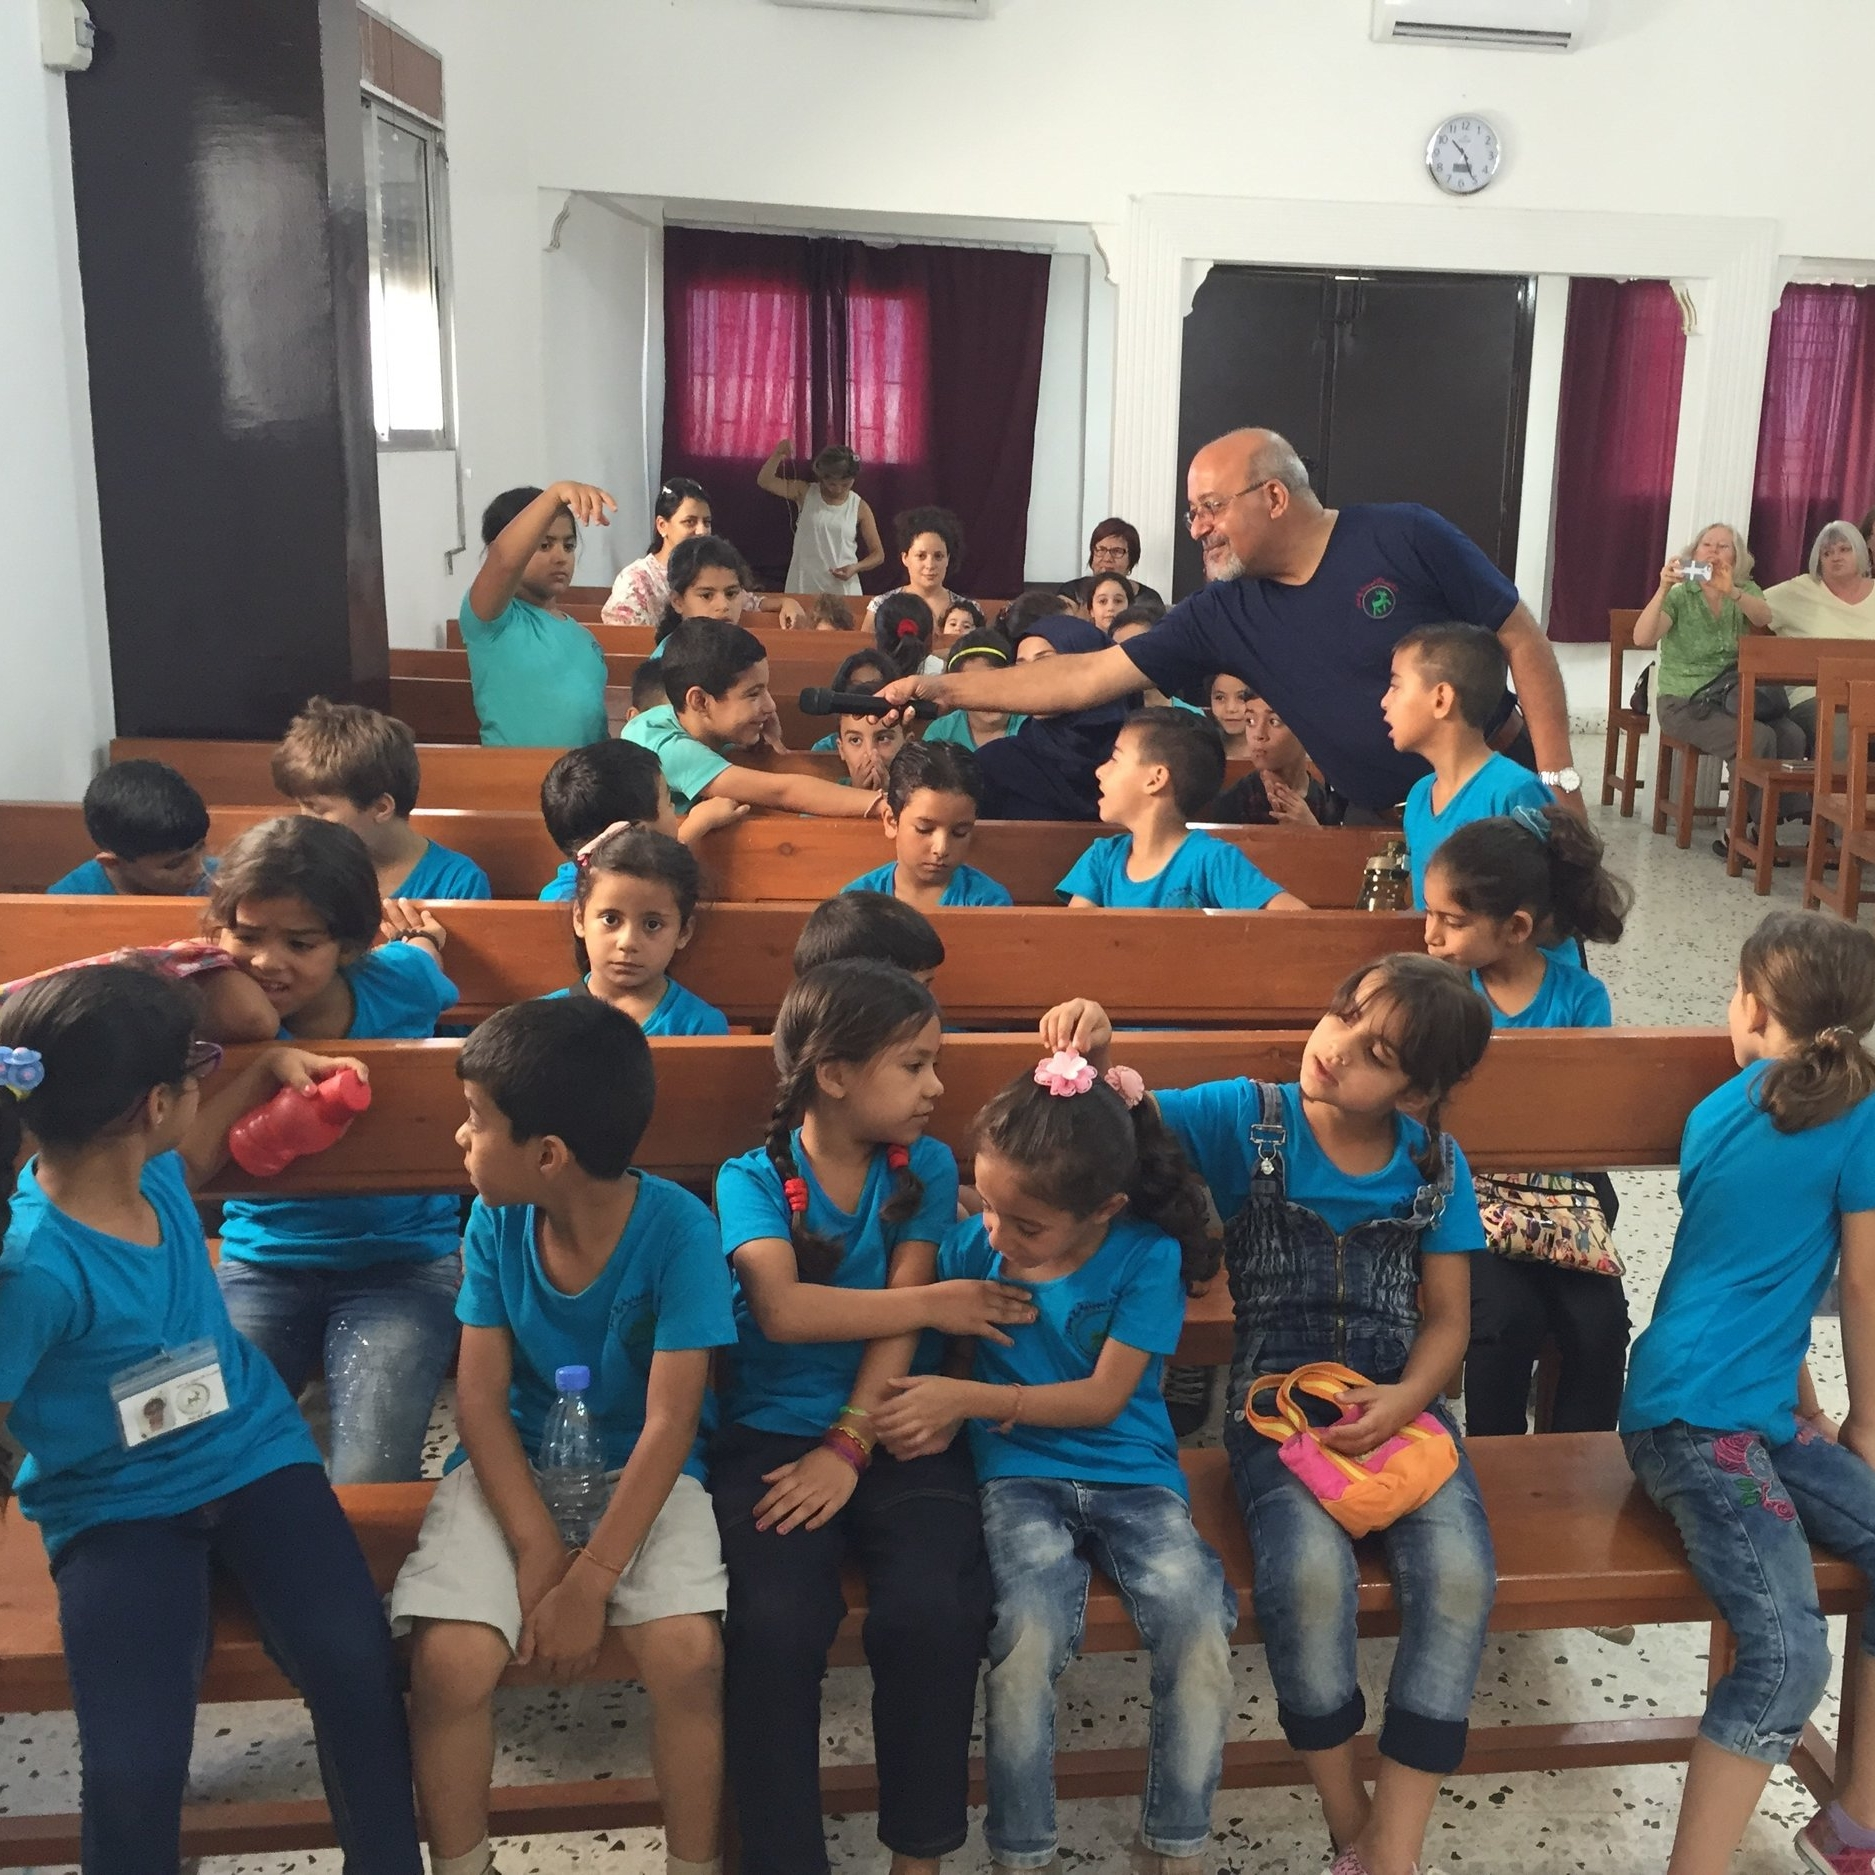 Syrian refugee children discussing a Bible story during chapel in Tyre.